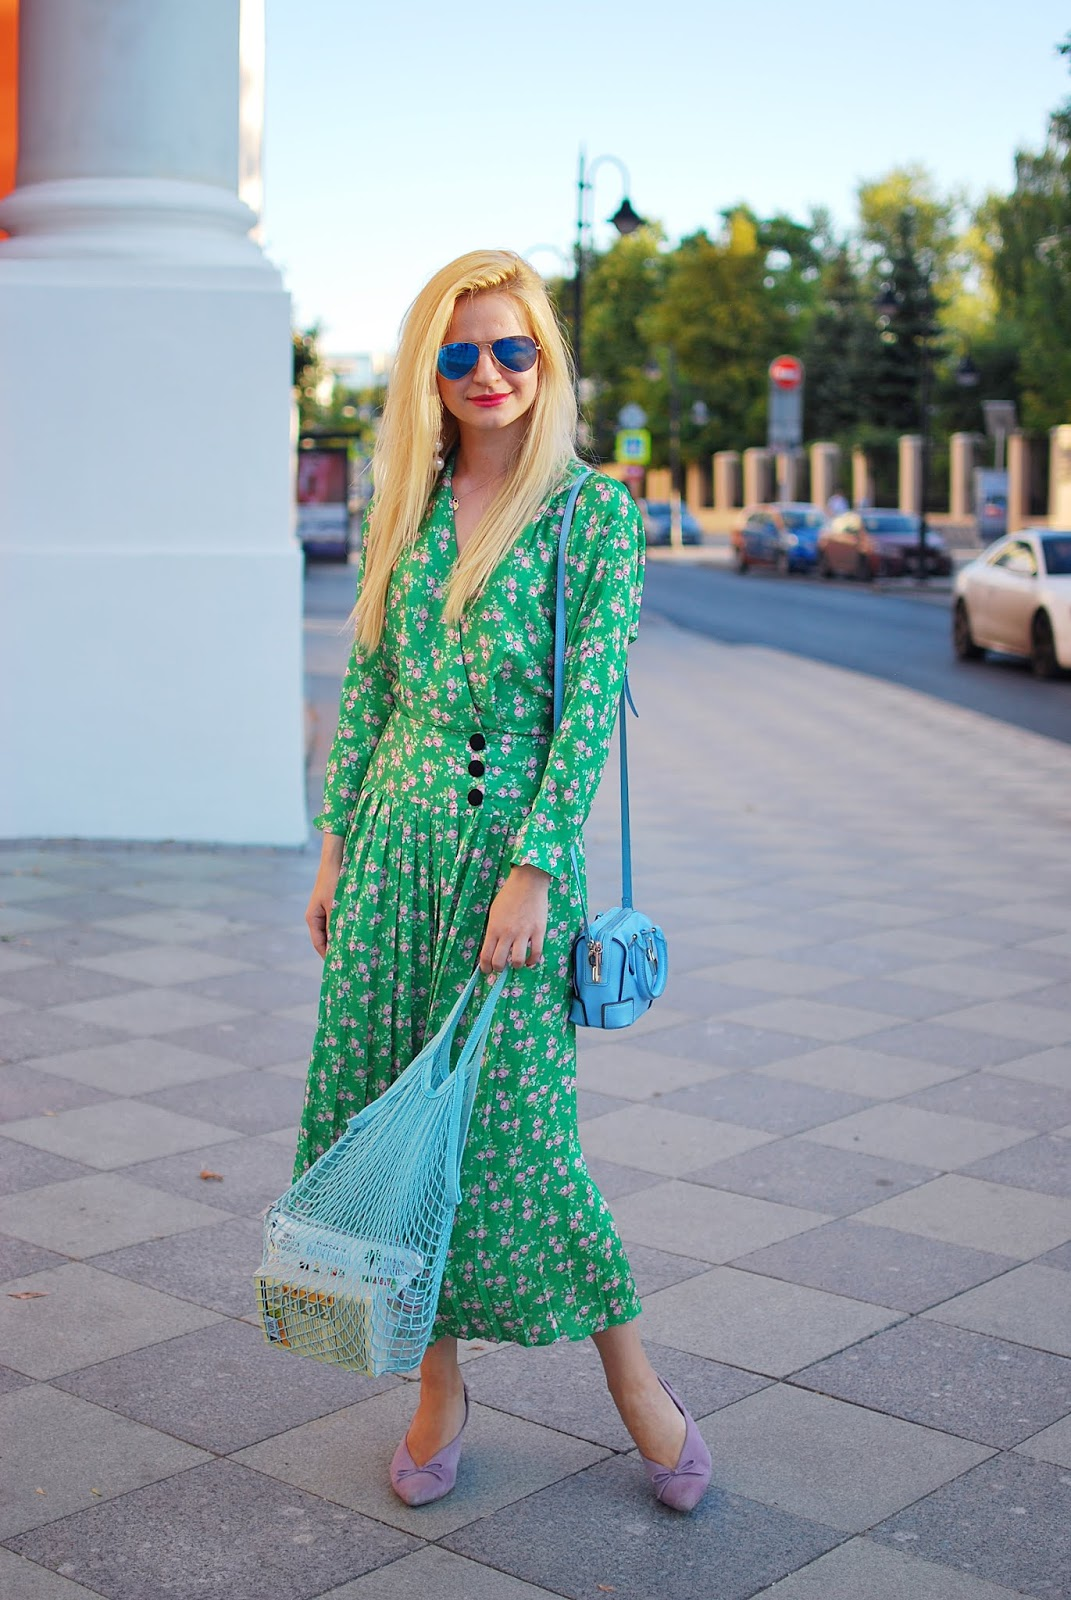 fashion street outfit with net bag how to wear